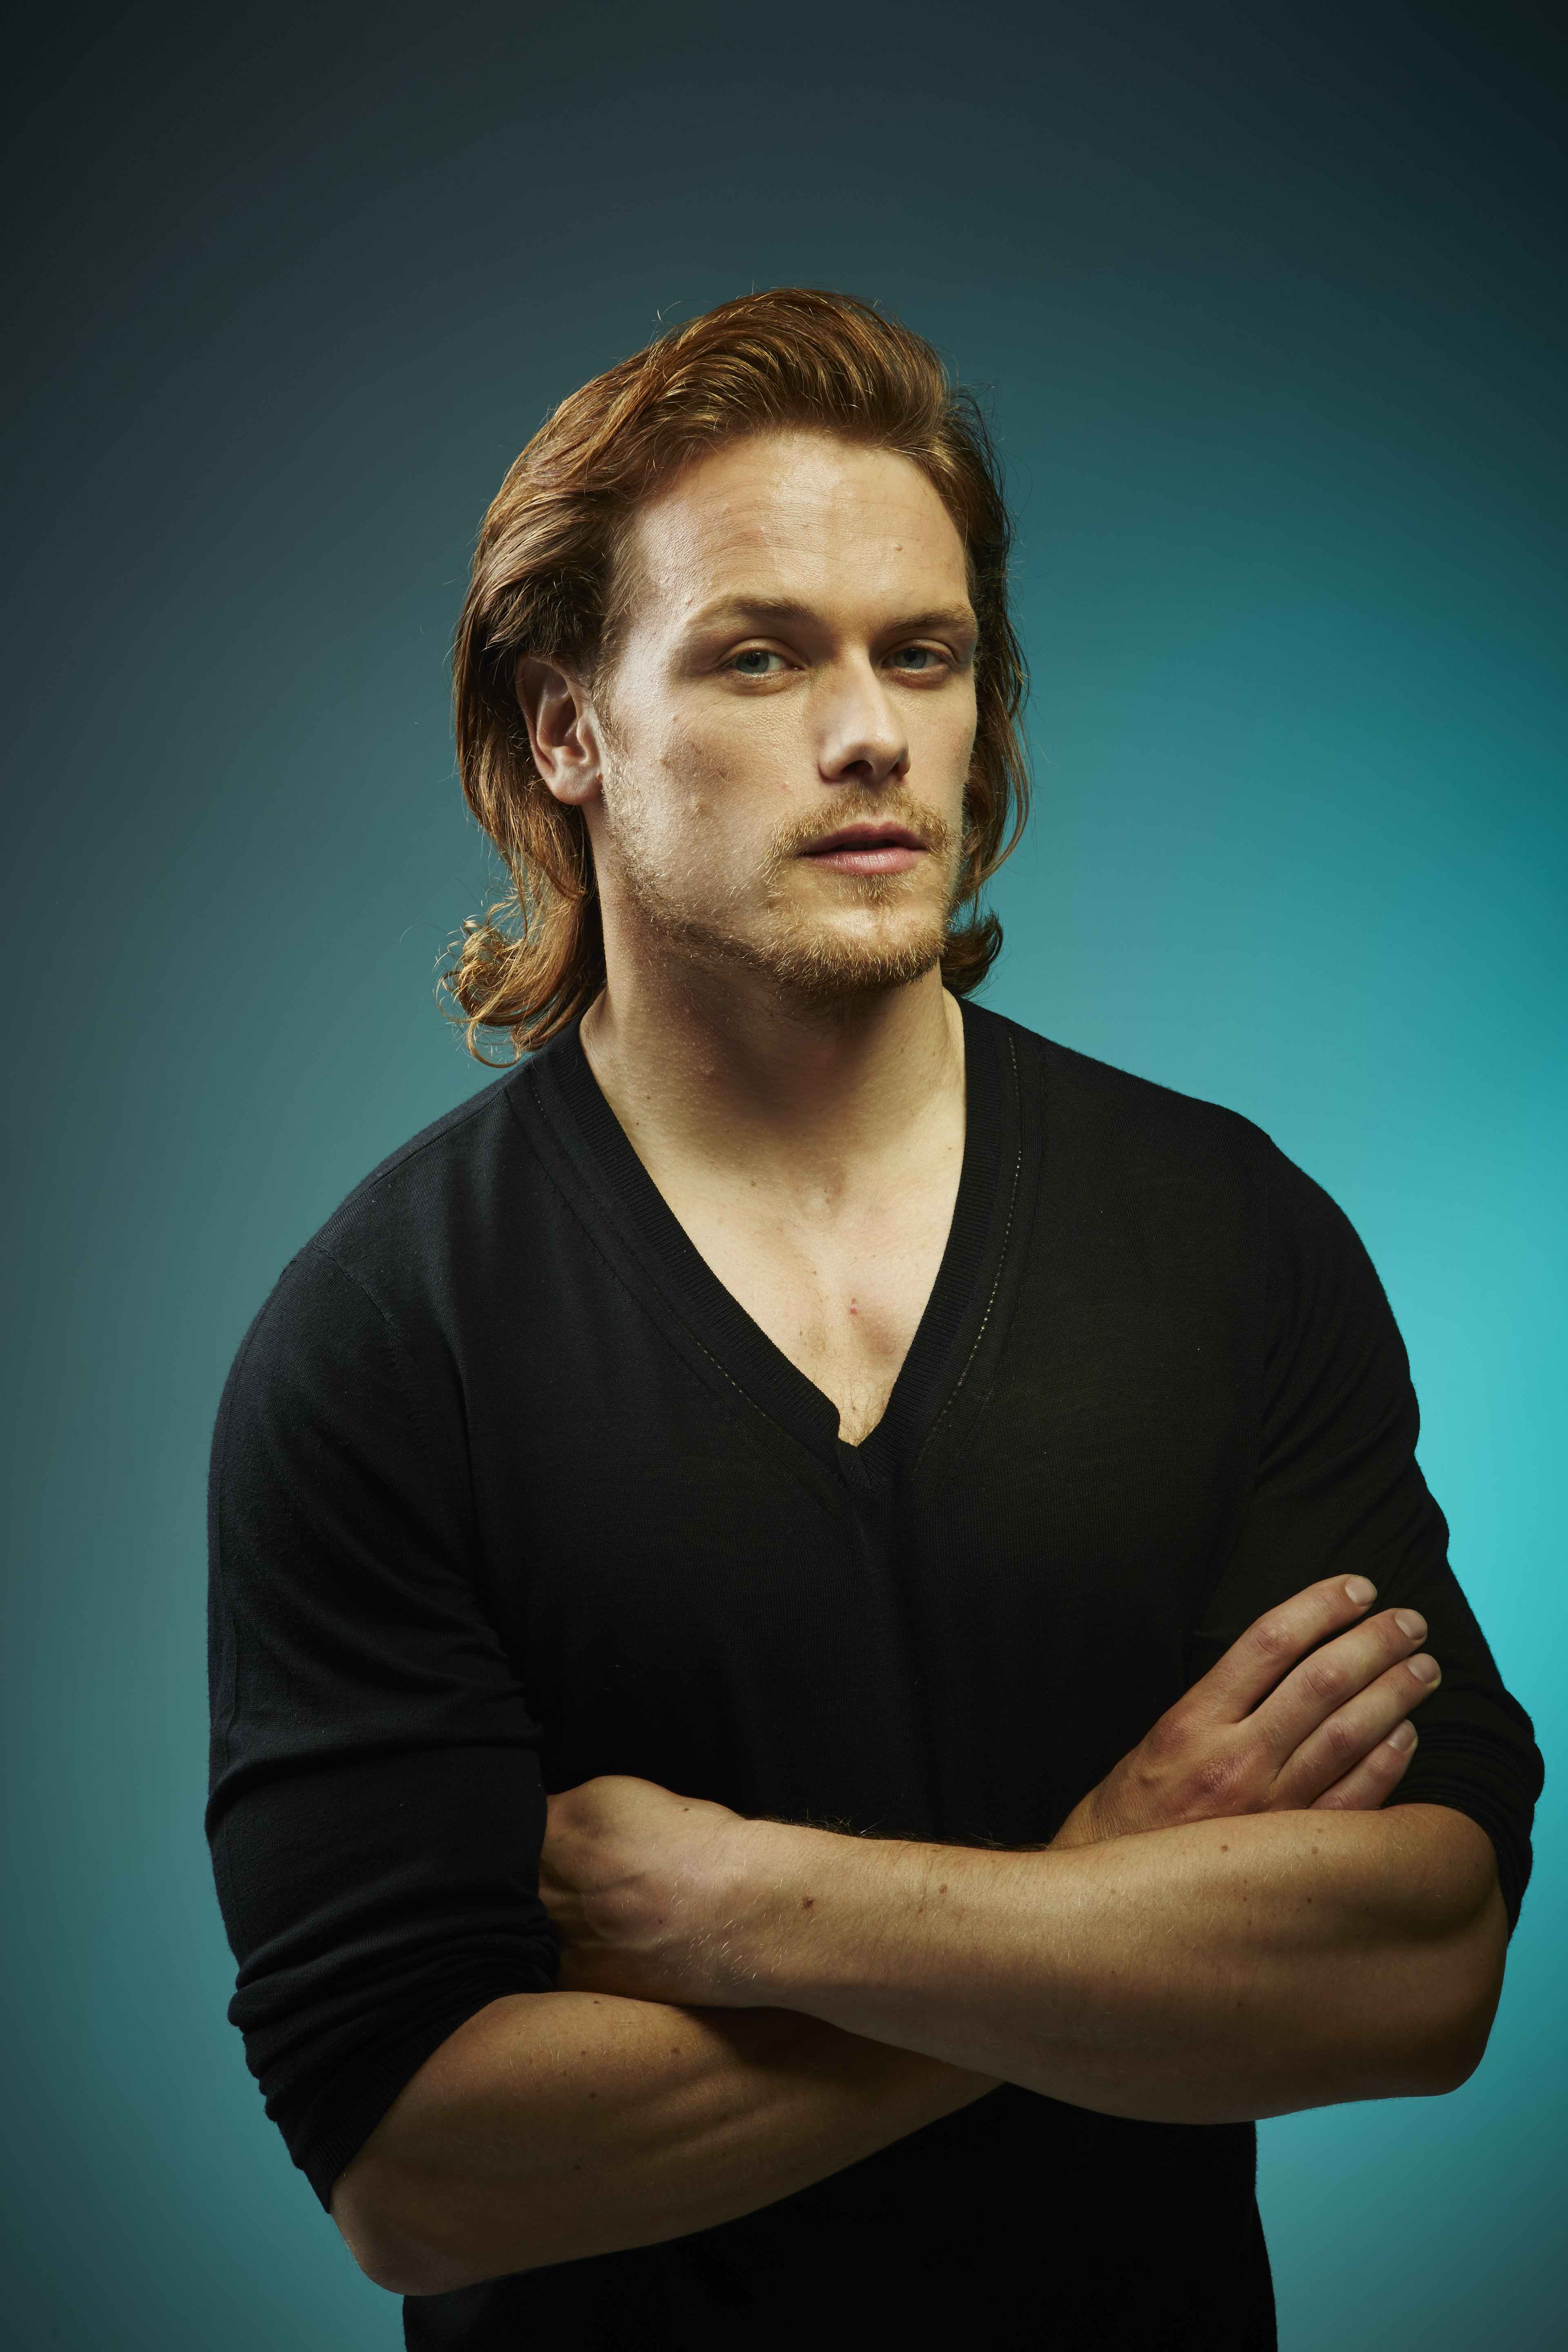 More Hq Comic Con Portraits Of Sam Heughan Caitriona